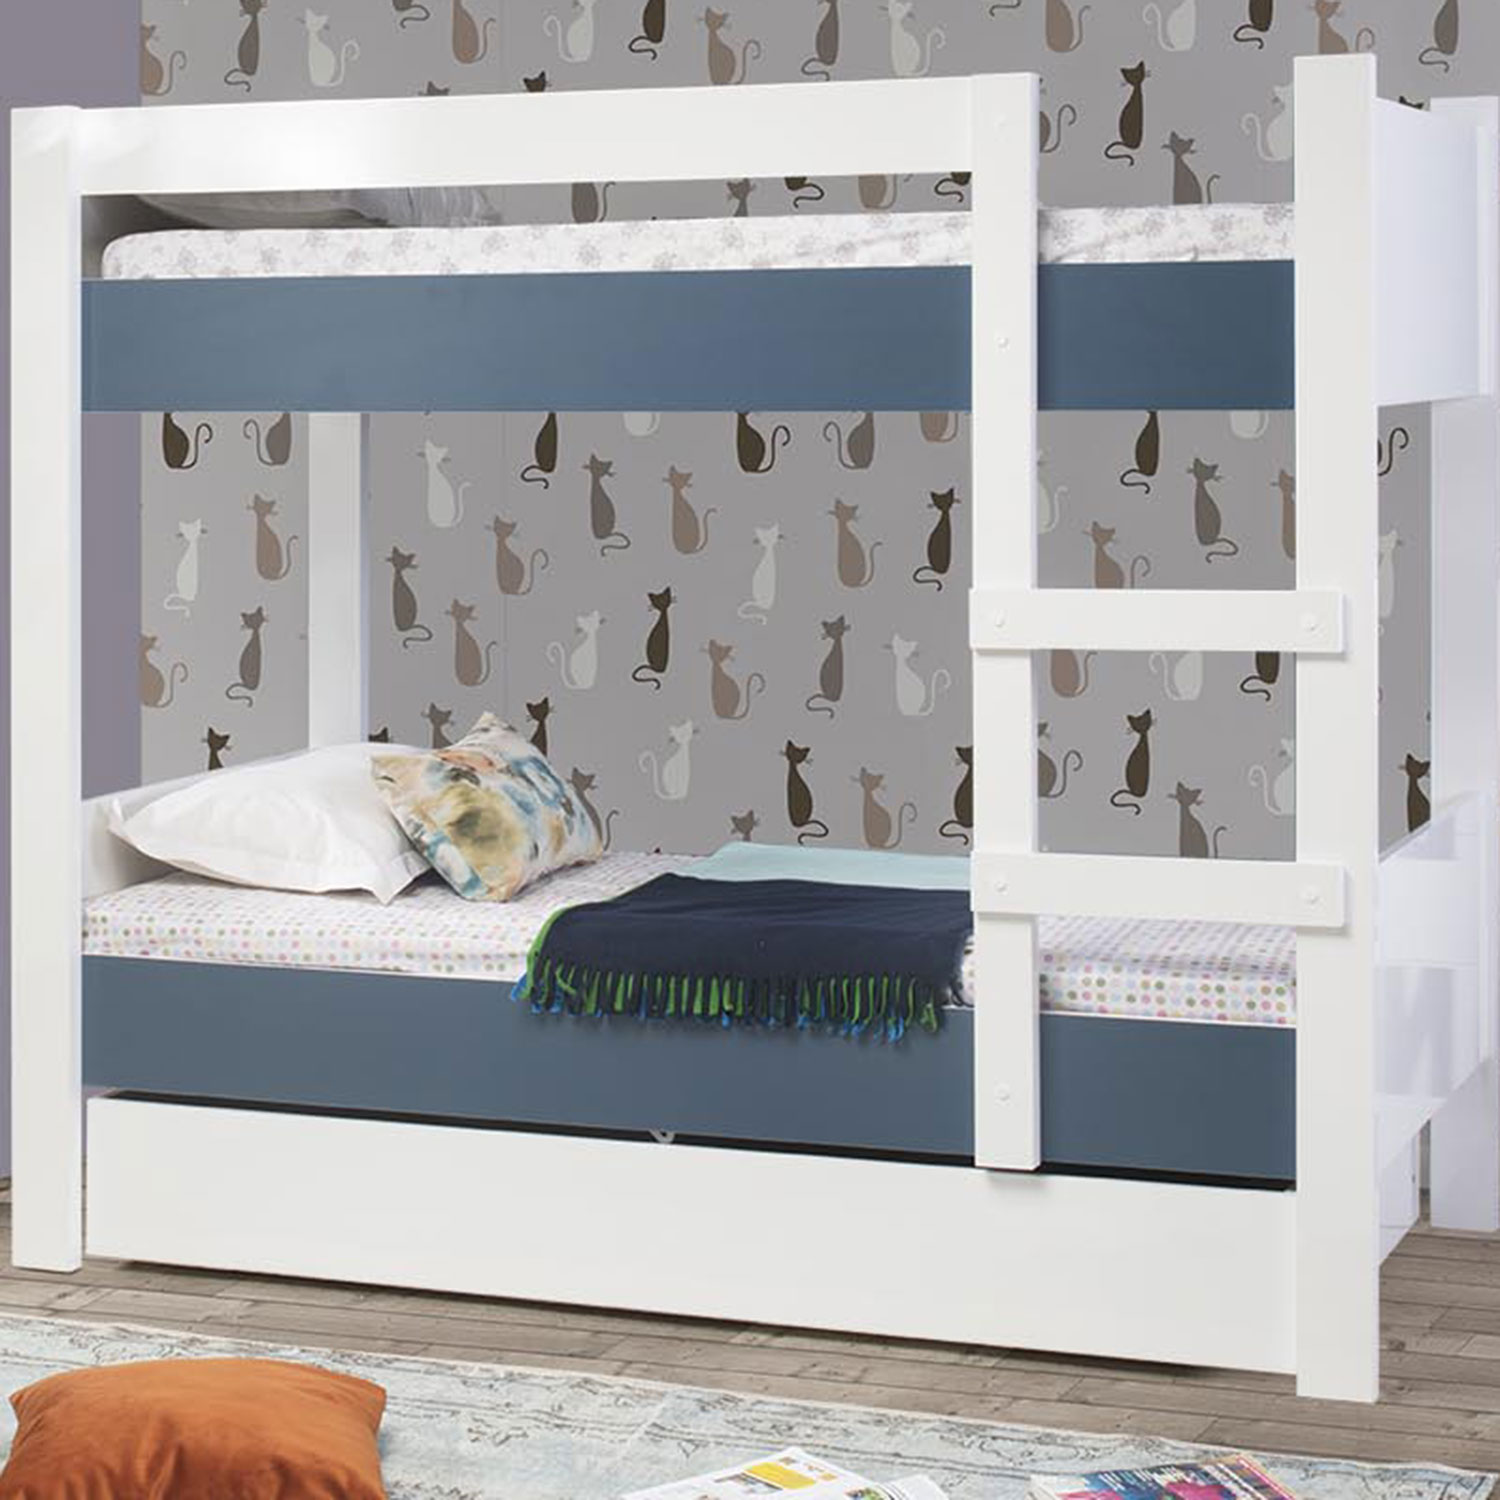 ASYA BUNK BED IN DARK BLUE